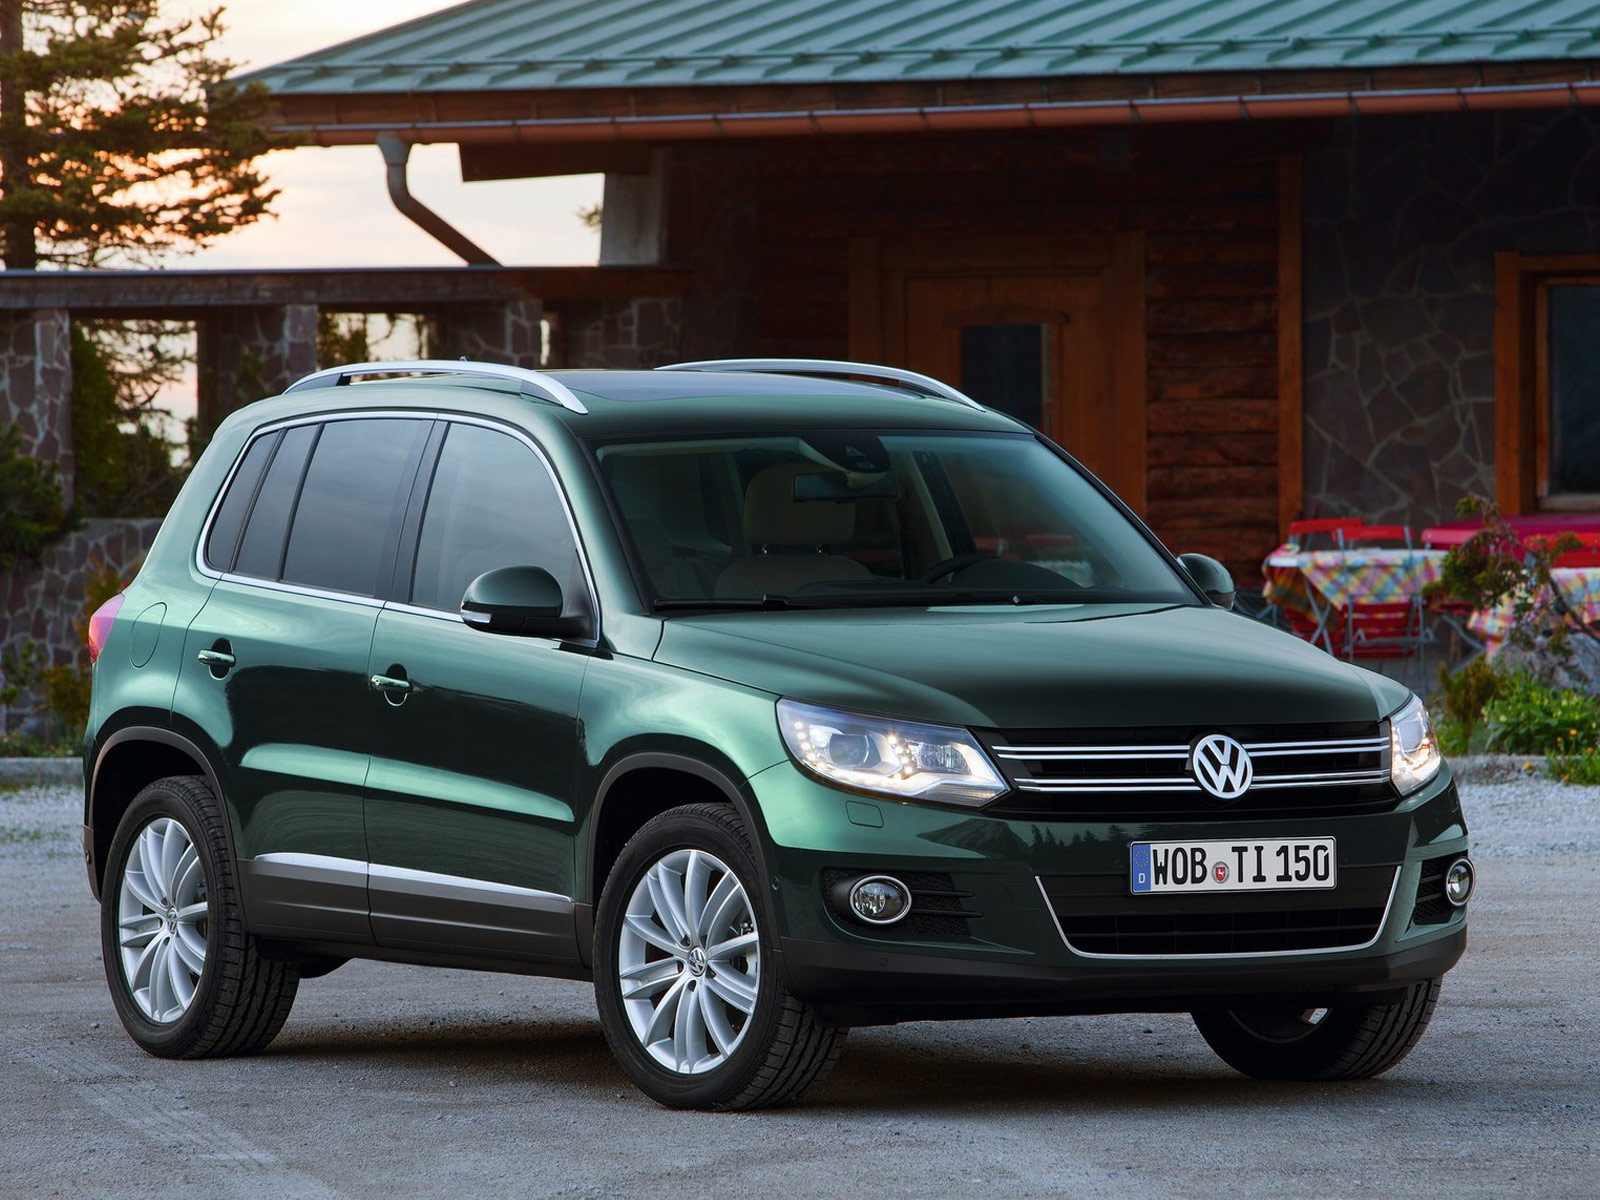 2012 VW Tiguan Volkswagen Wallpapers, Review, Features